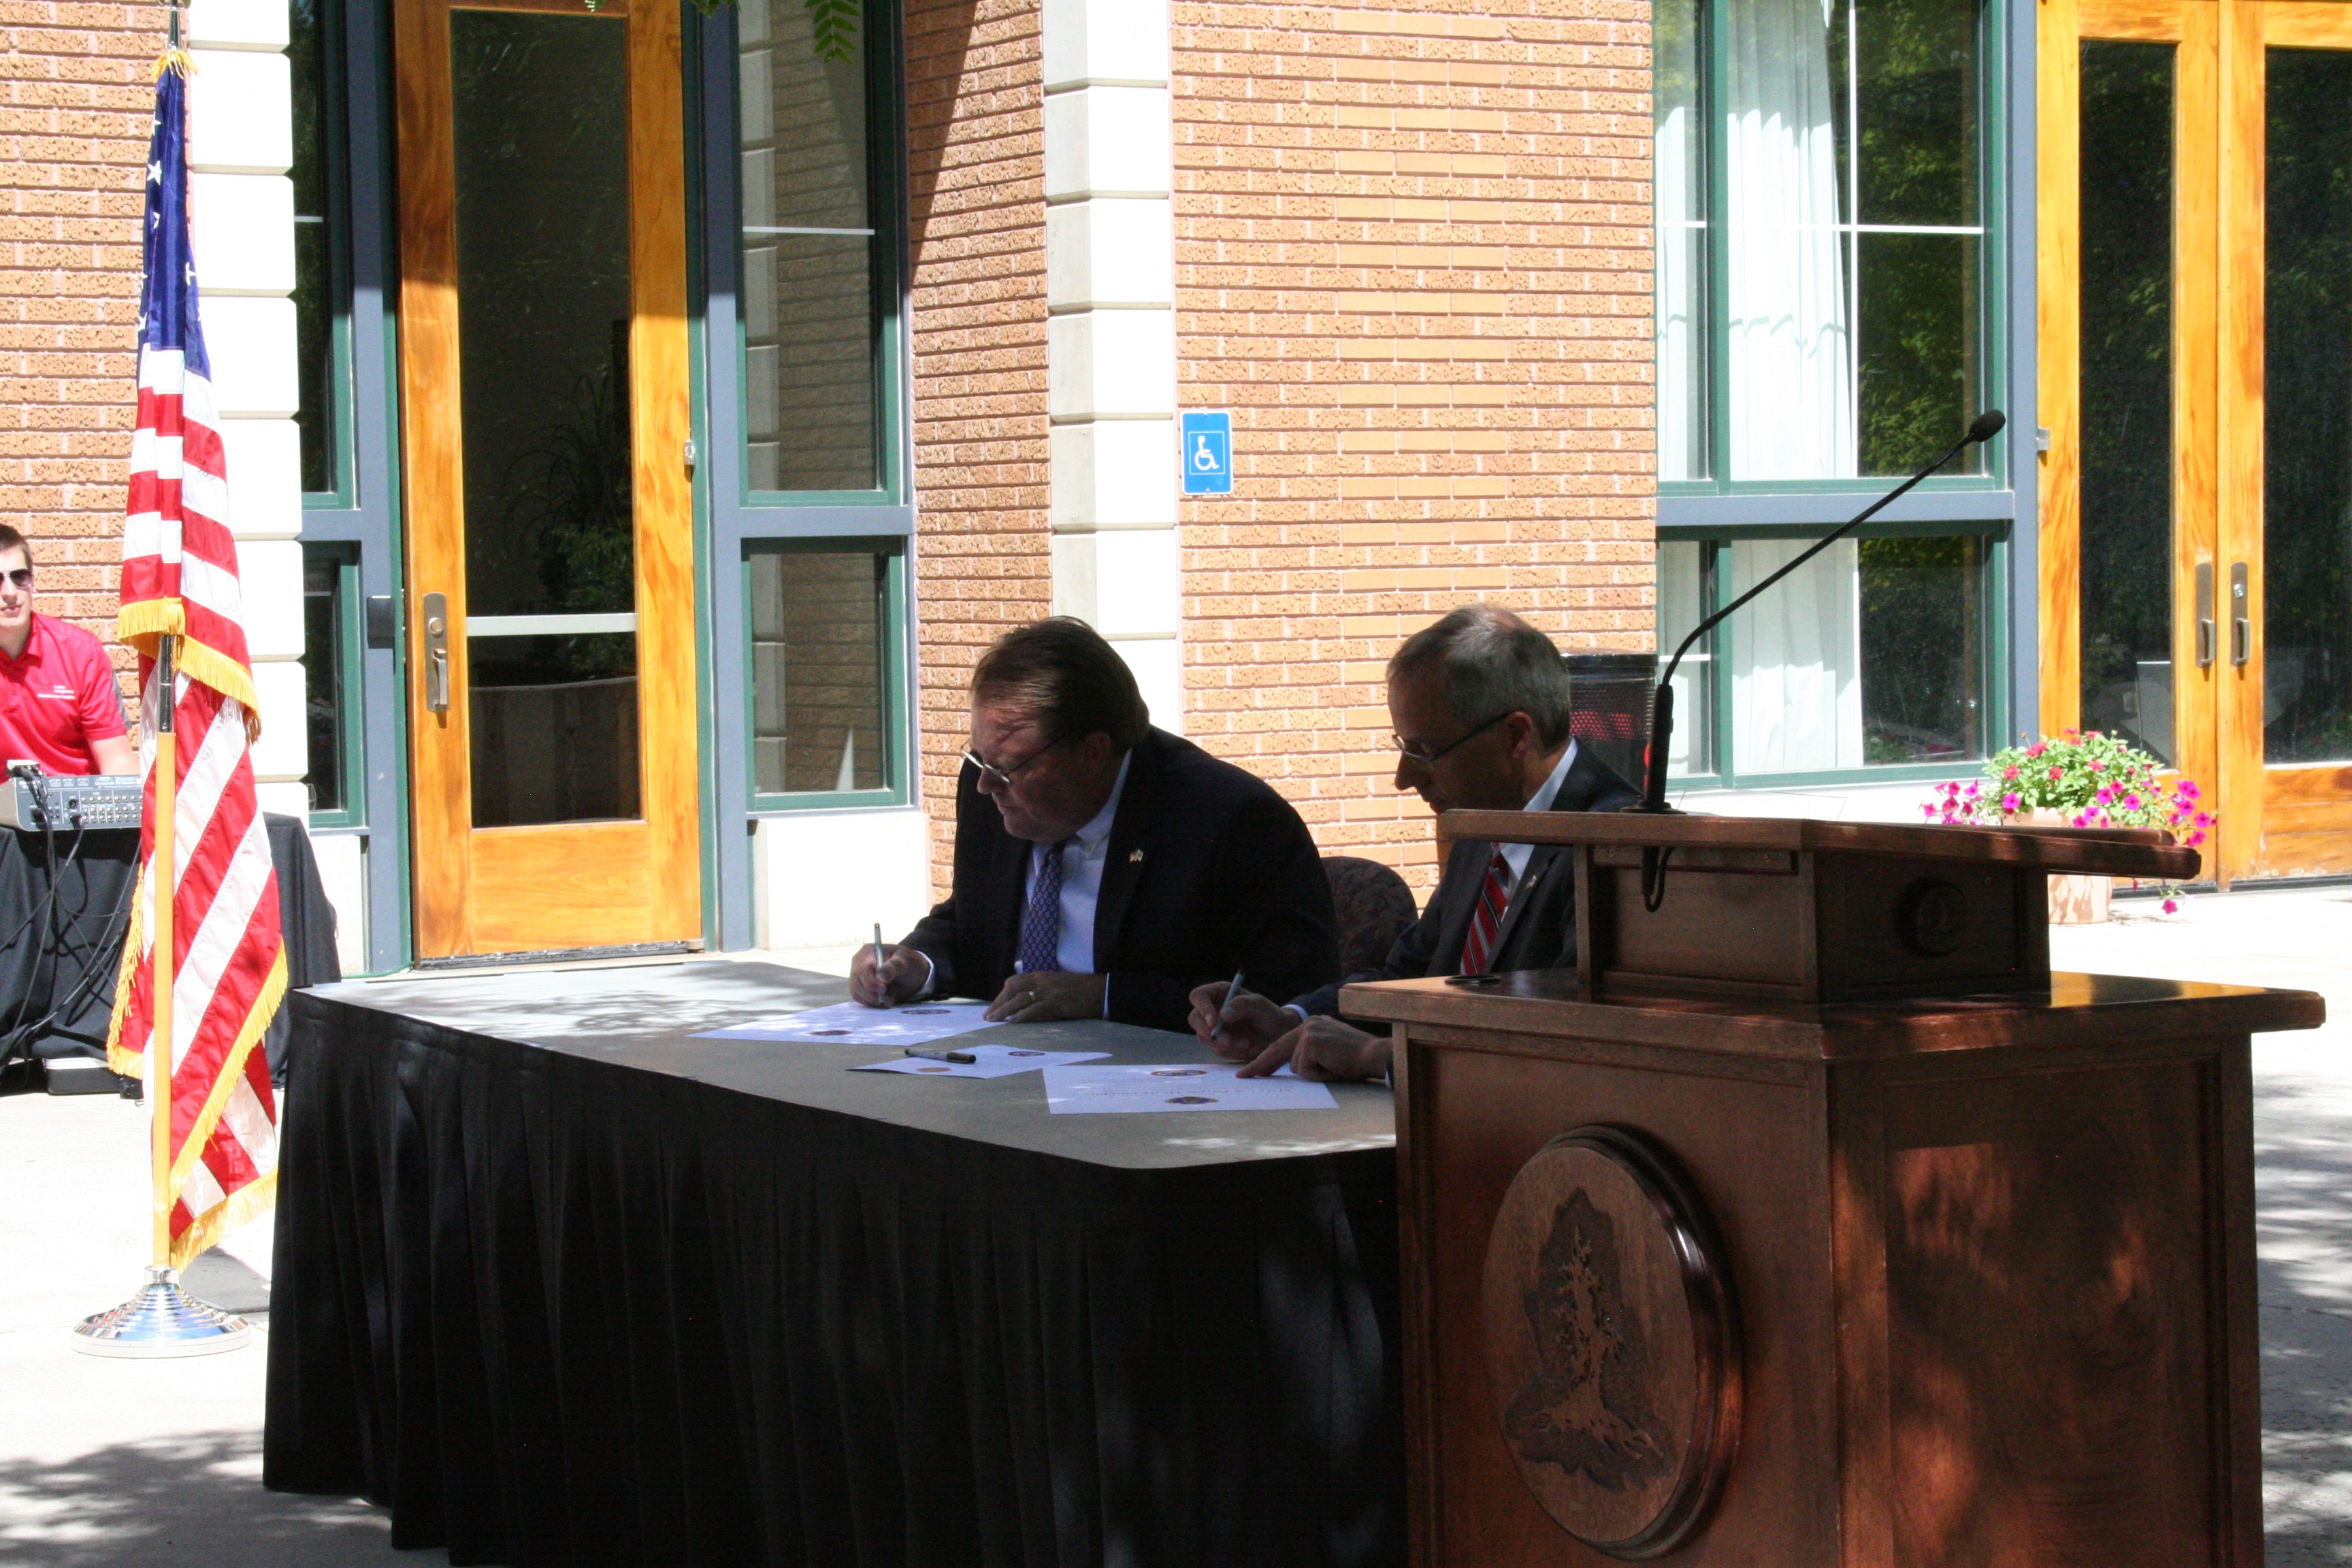 SUU President Scott Wyatt and Board of Trustees Chairman Eric Leavitt join to sign the official proclamation designating Southern Utah University a Purple Heart Campus, Cedar City, Utah, June 24, 2016 | Photo by Kaleigh Bronson, St. George News / Cedar City News